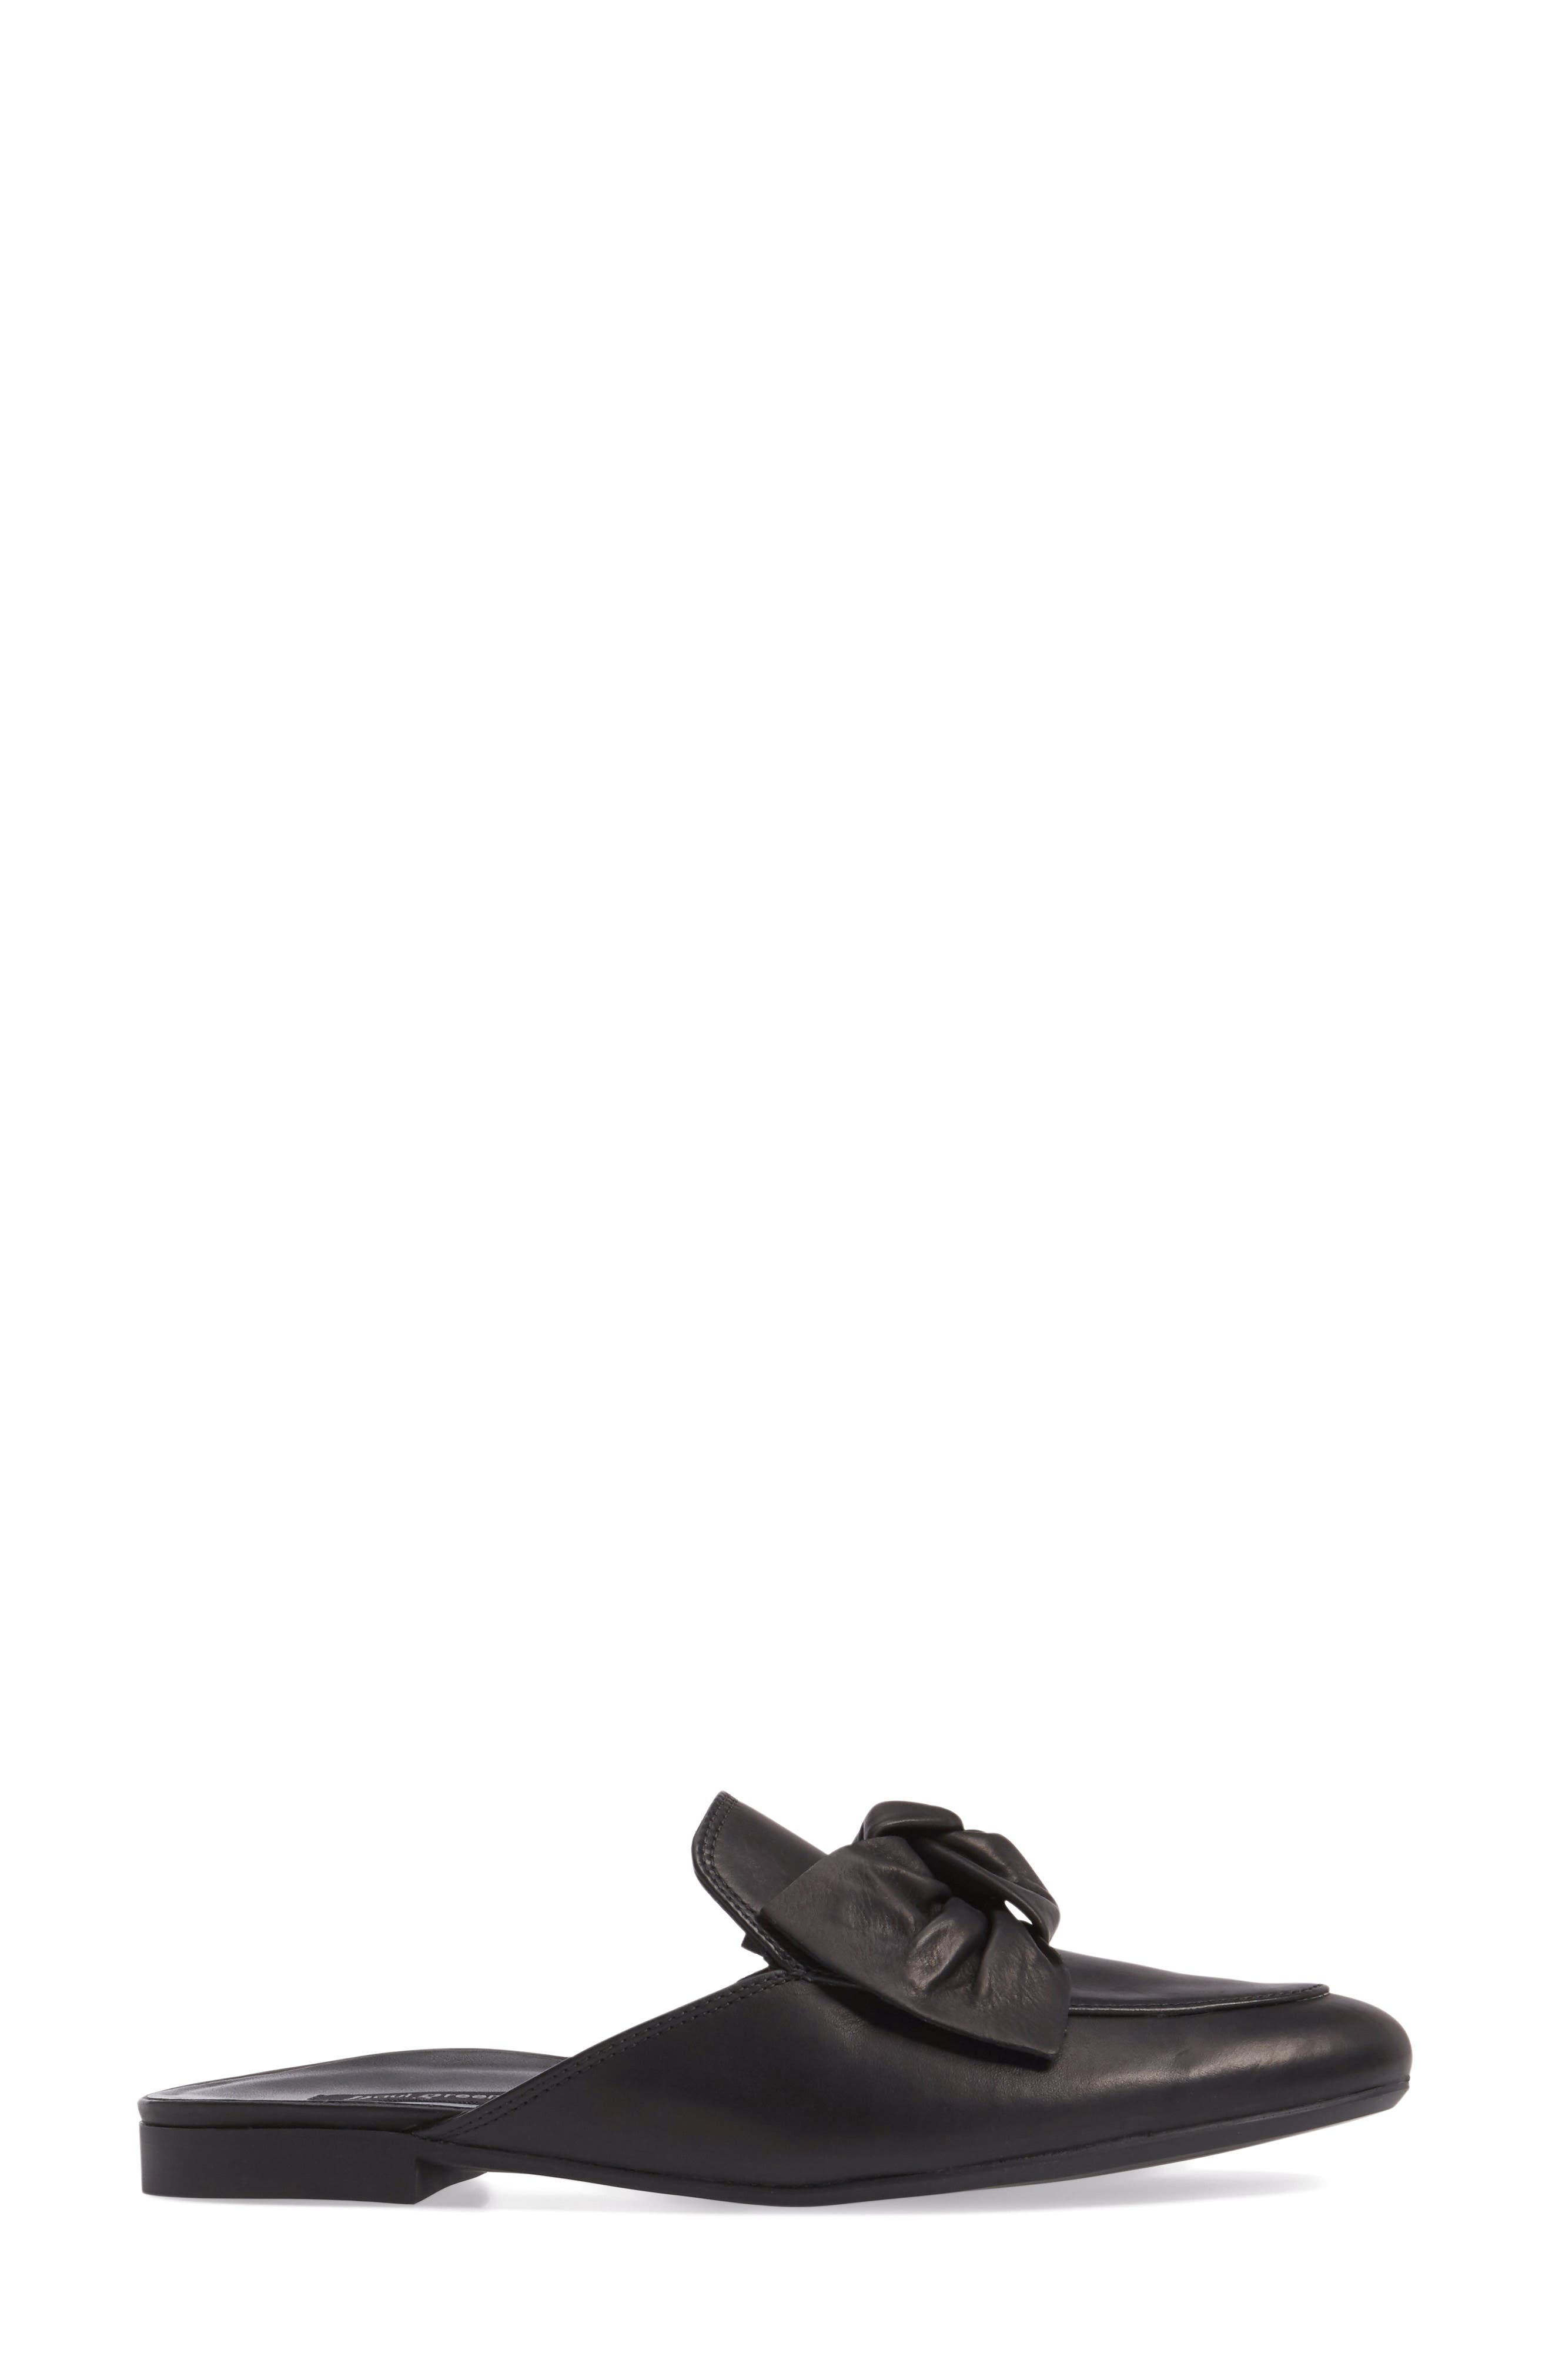 Mary Bow Mule Loafer,                             Alternate thumbnail 3, color,                             Black Leather